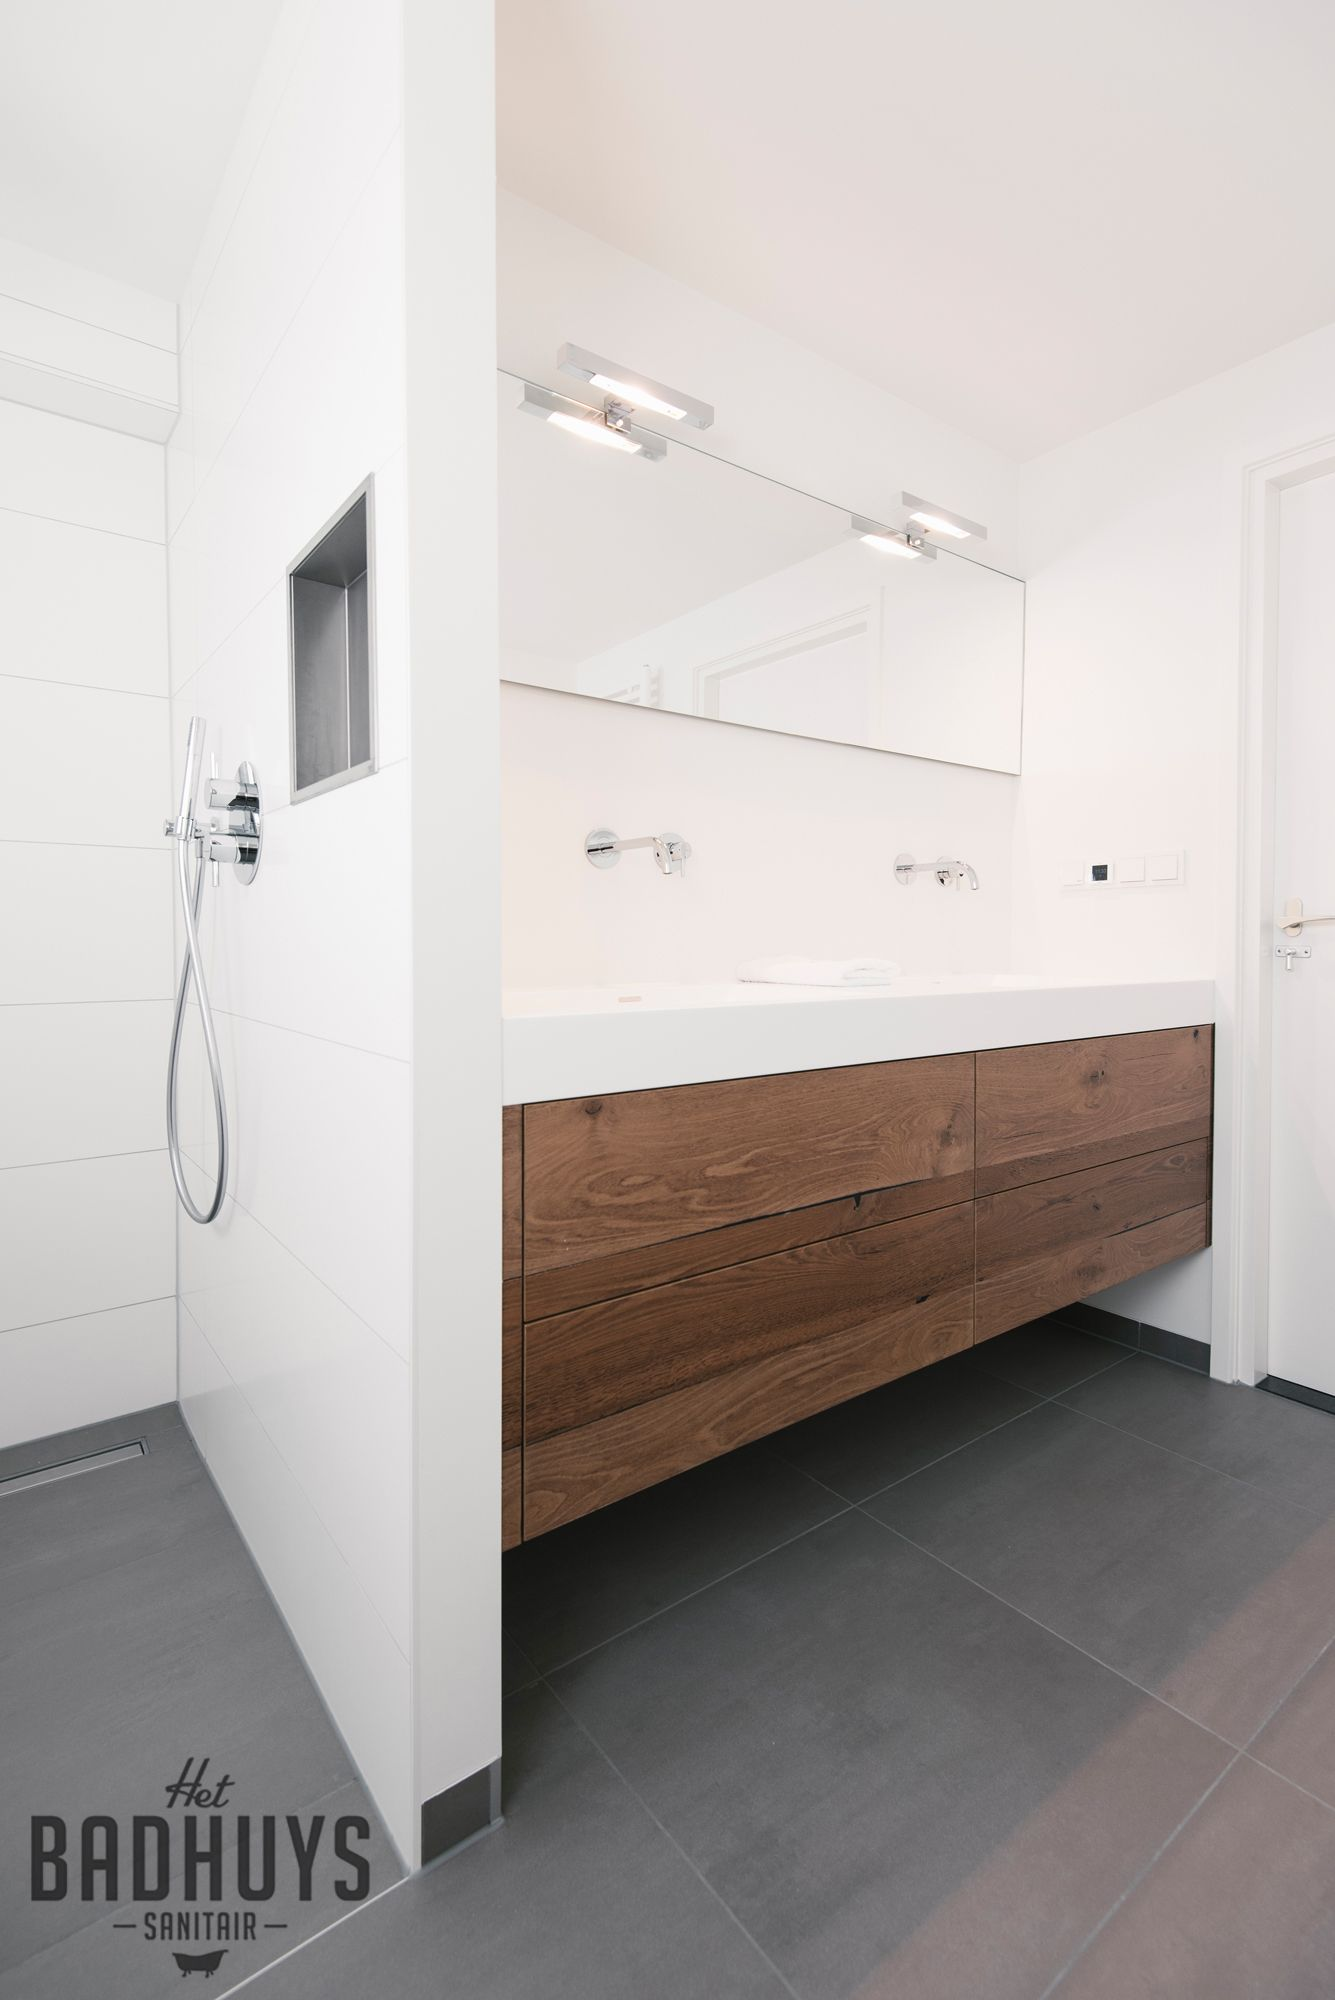 Het badhuys breda moderne badkamers l het badhuys pinterest bath interiors and bath room for Moderne badkamers